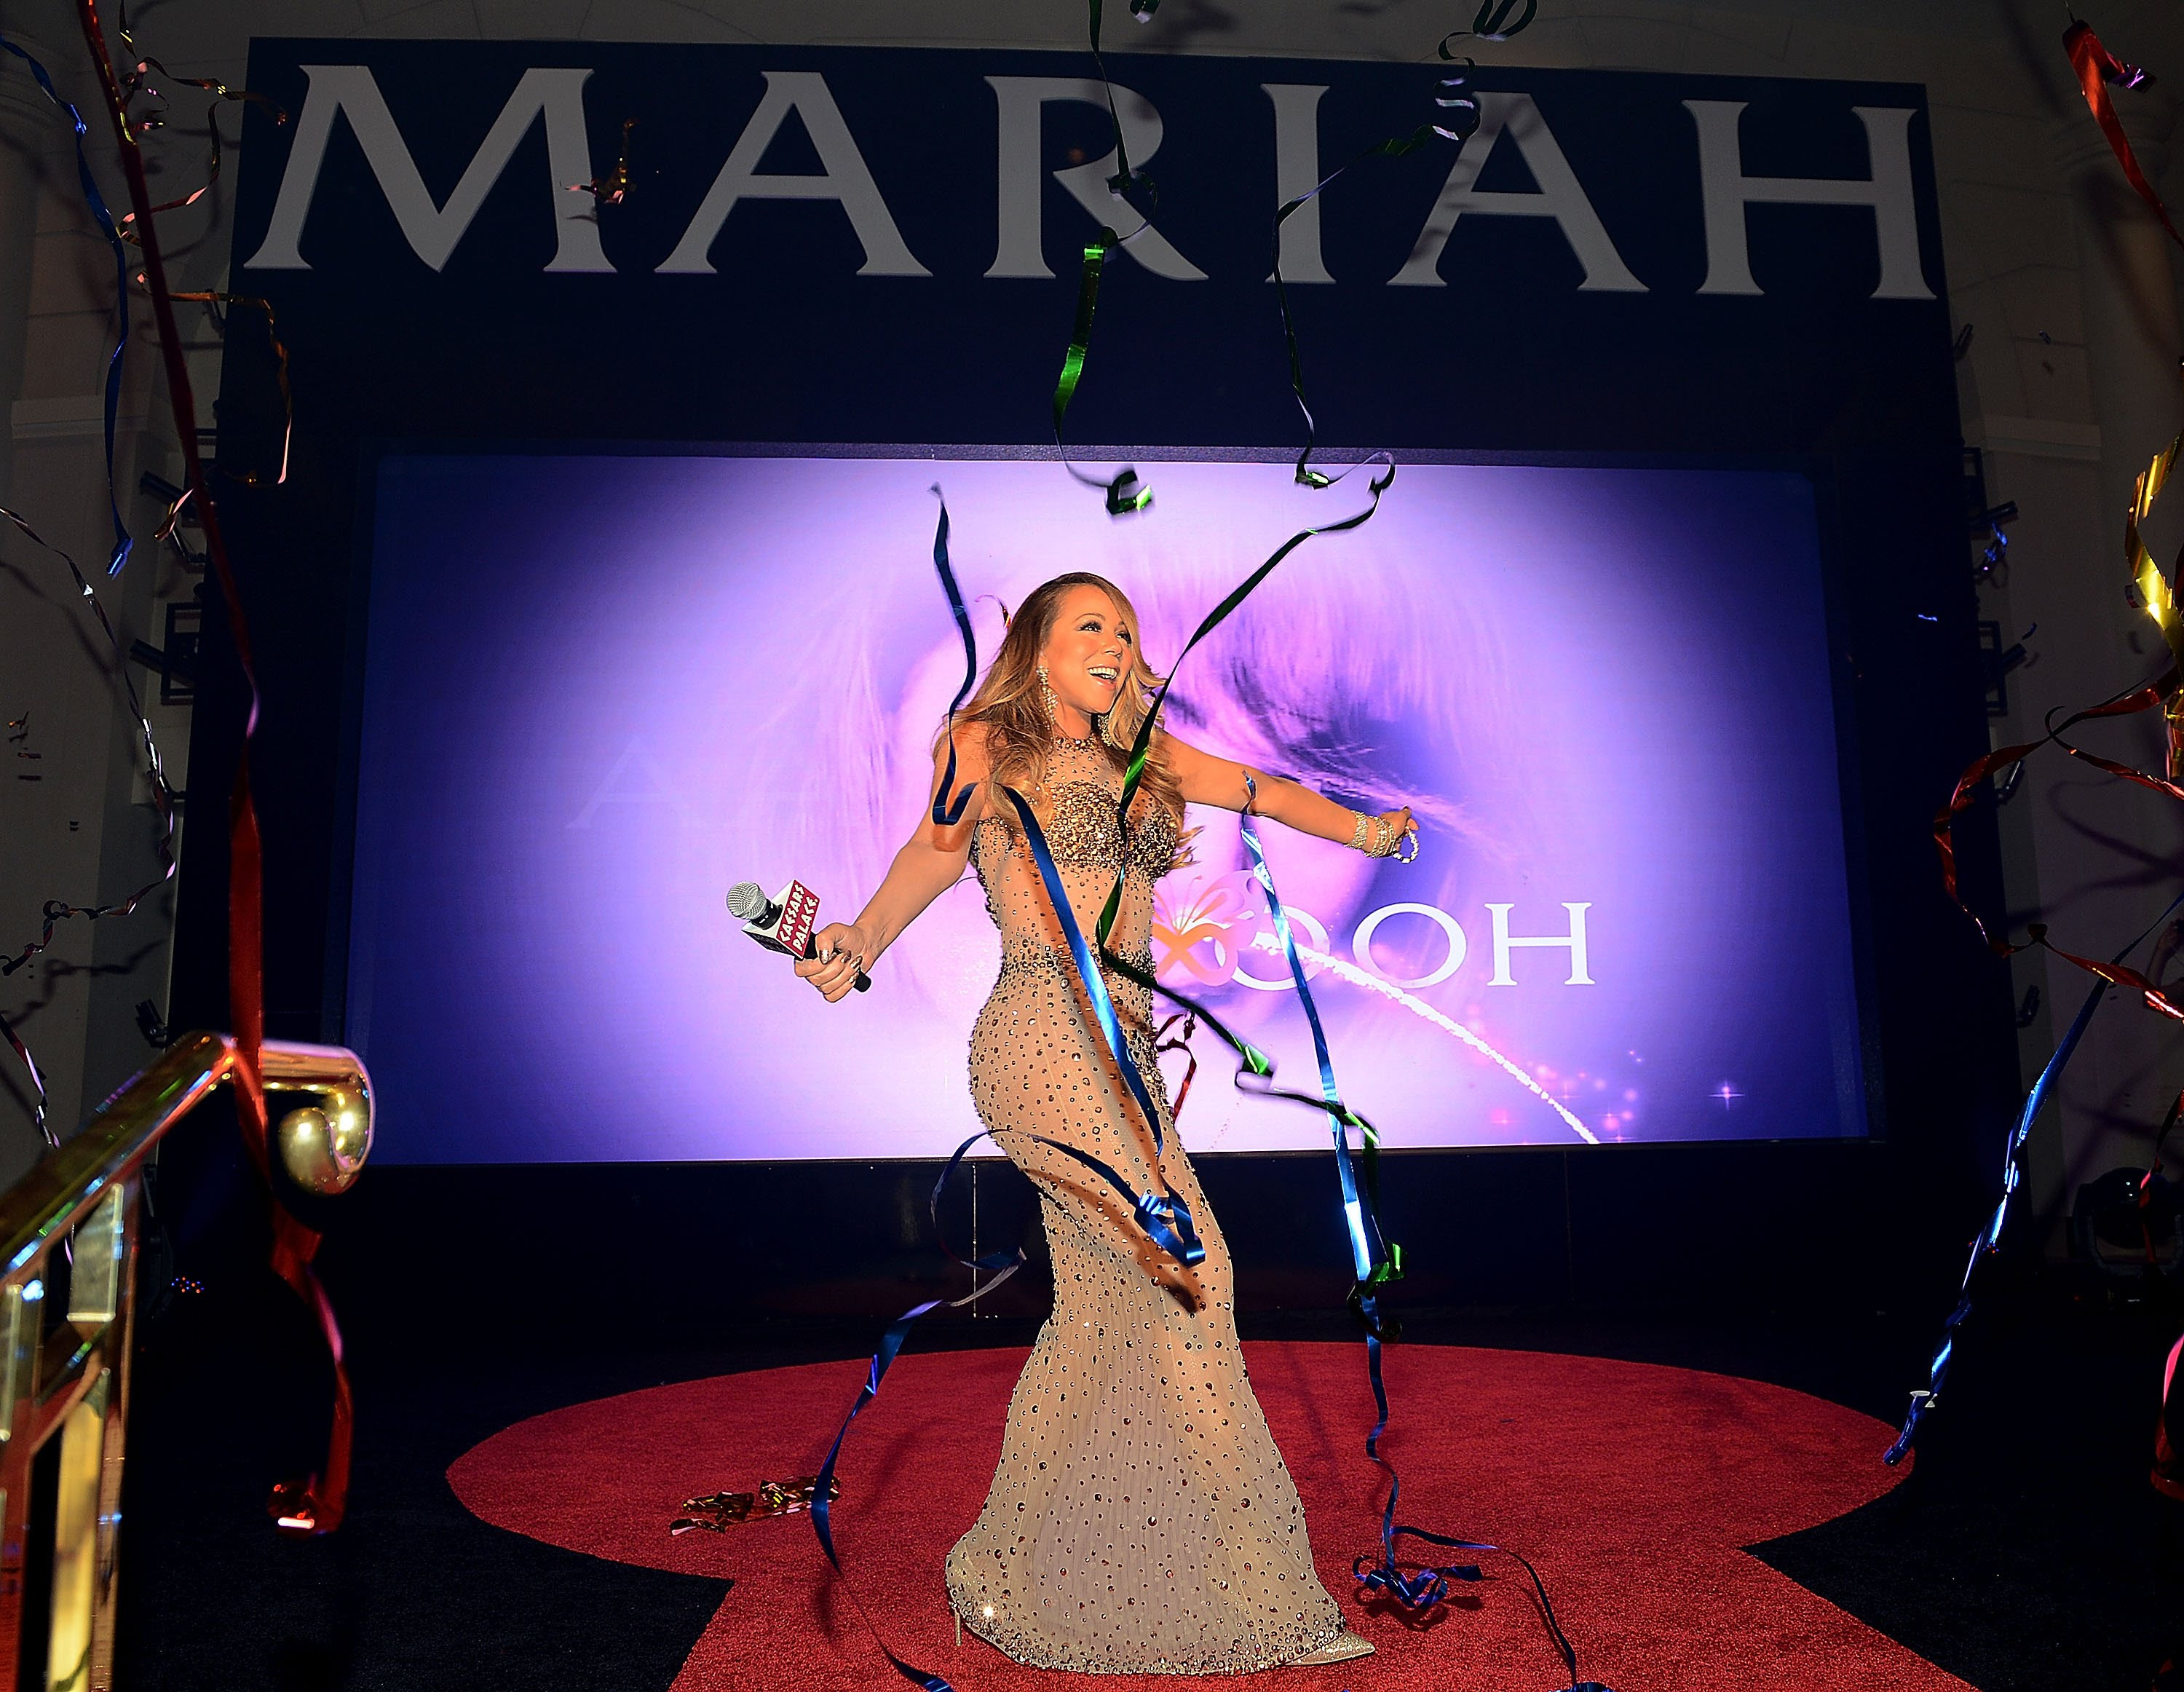 Mariah Carey declares 'The Butterfly Returns' with new Las Vegas residency